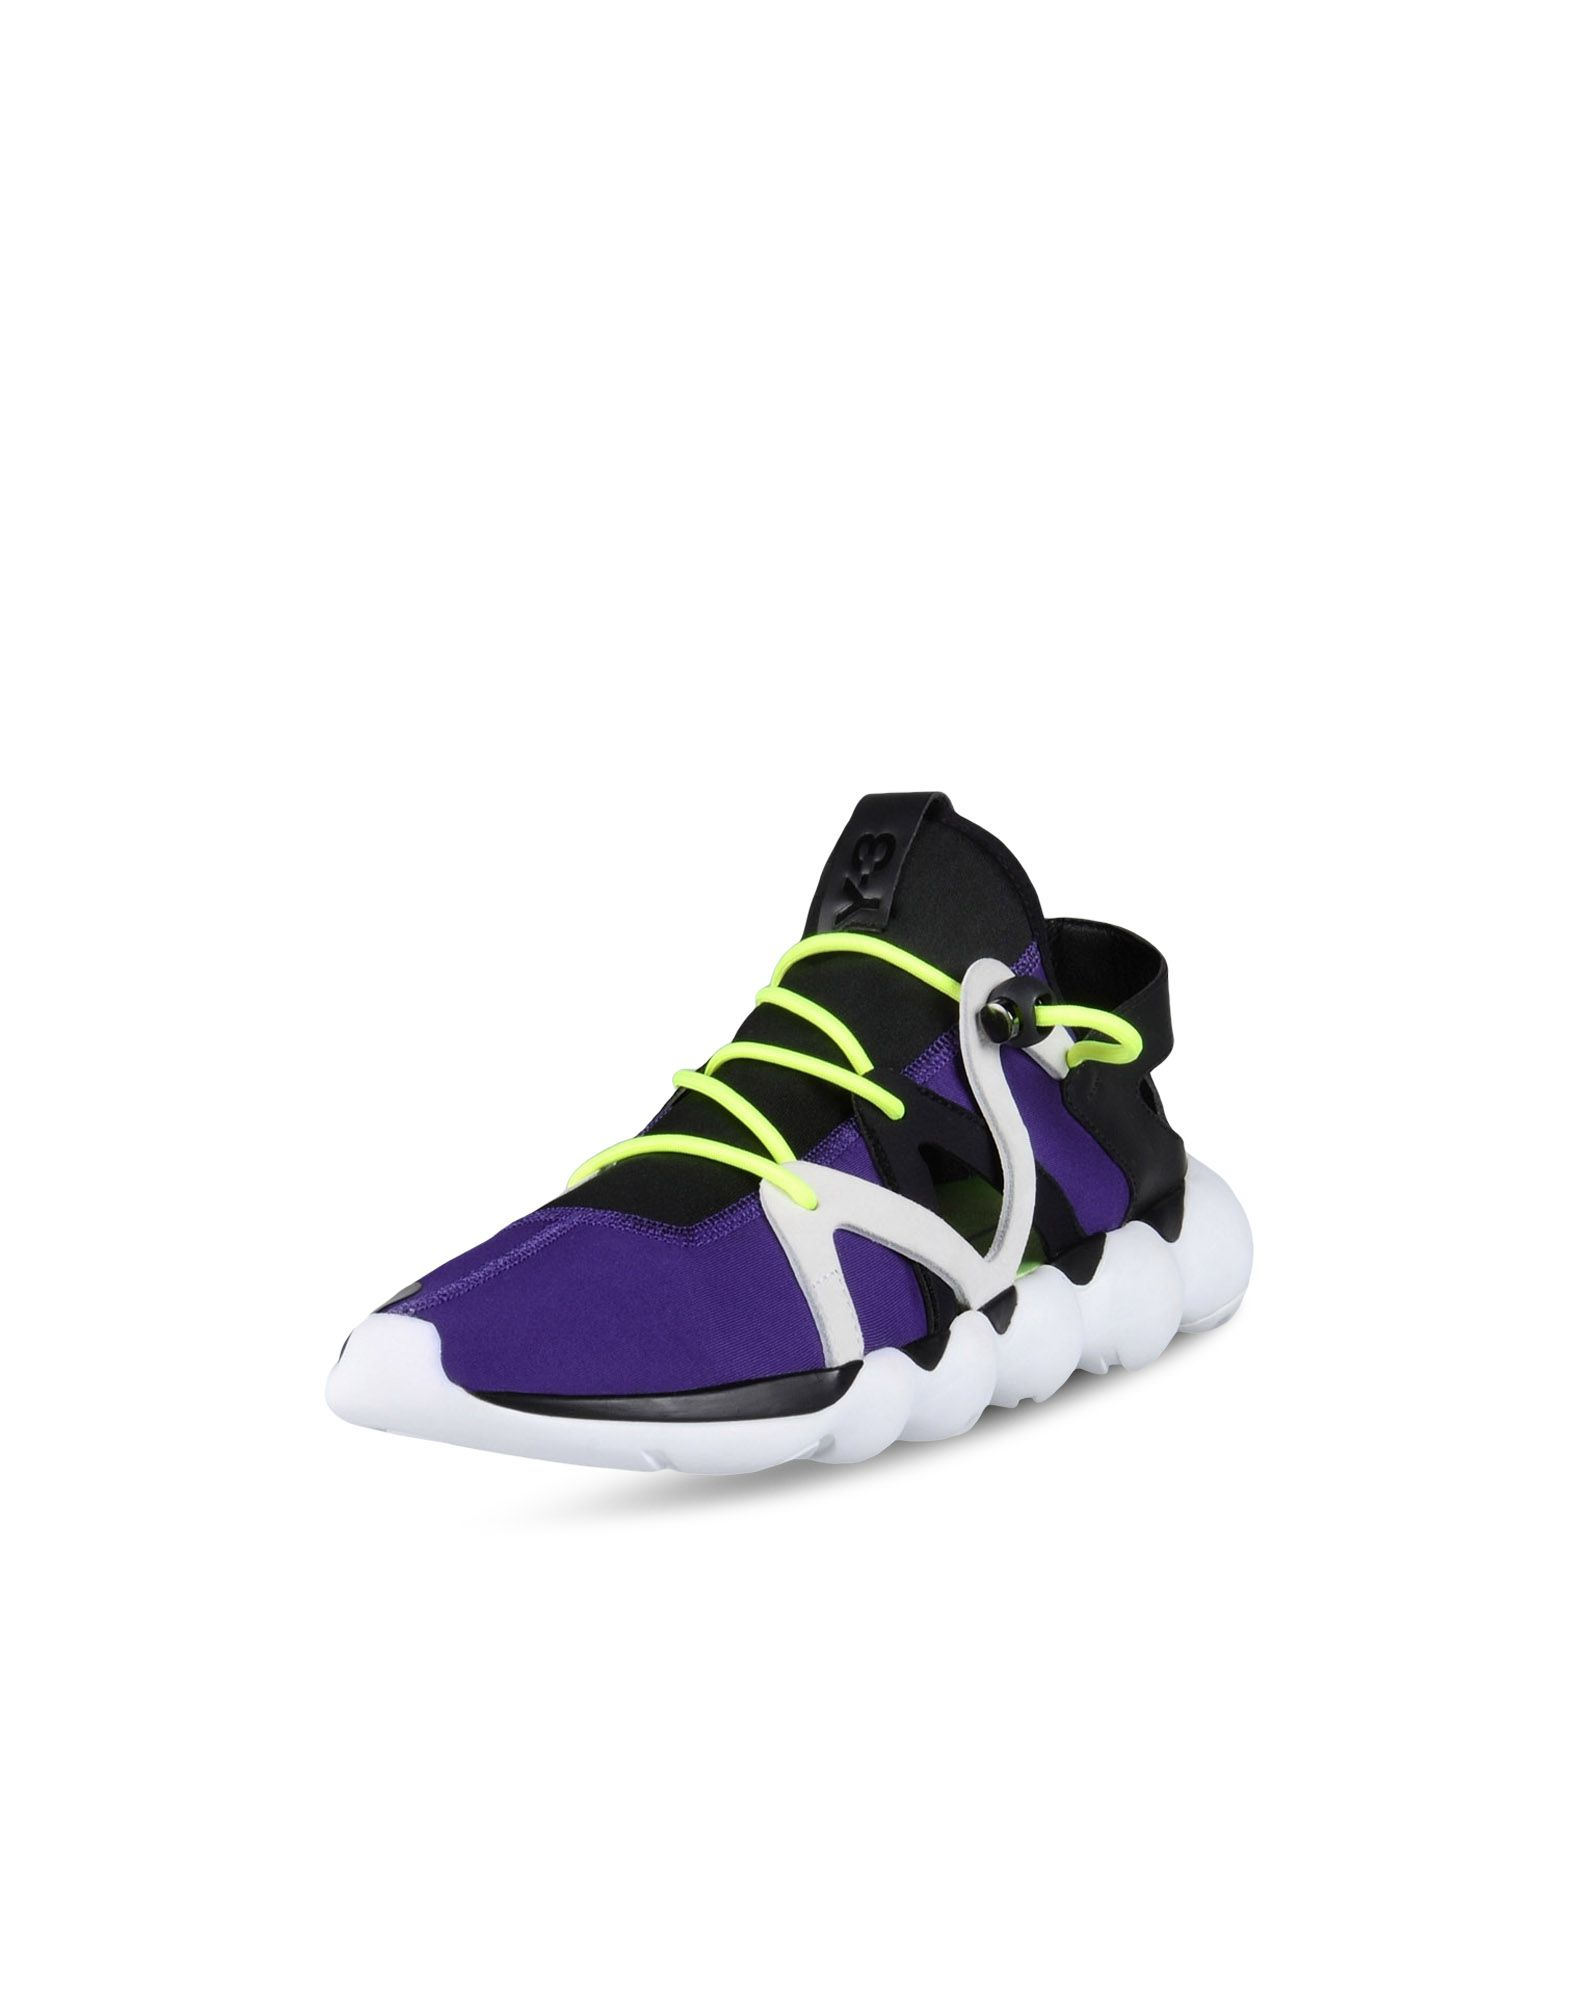 2b9aa7d439a22 Lyst - Y-3 Men s Kyujo Low Sneakers In Black And Purple in Black for Men